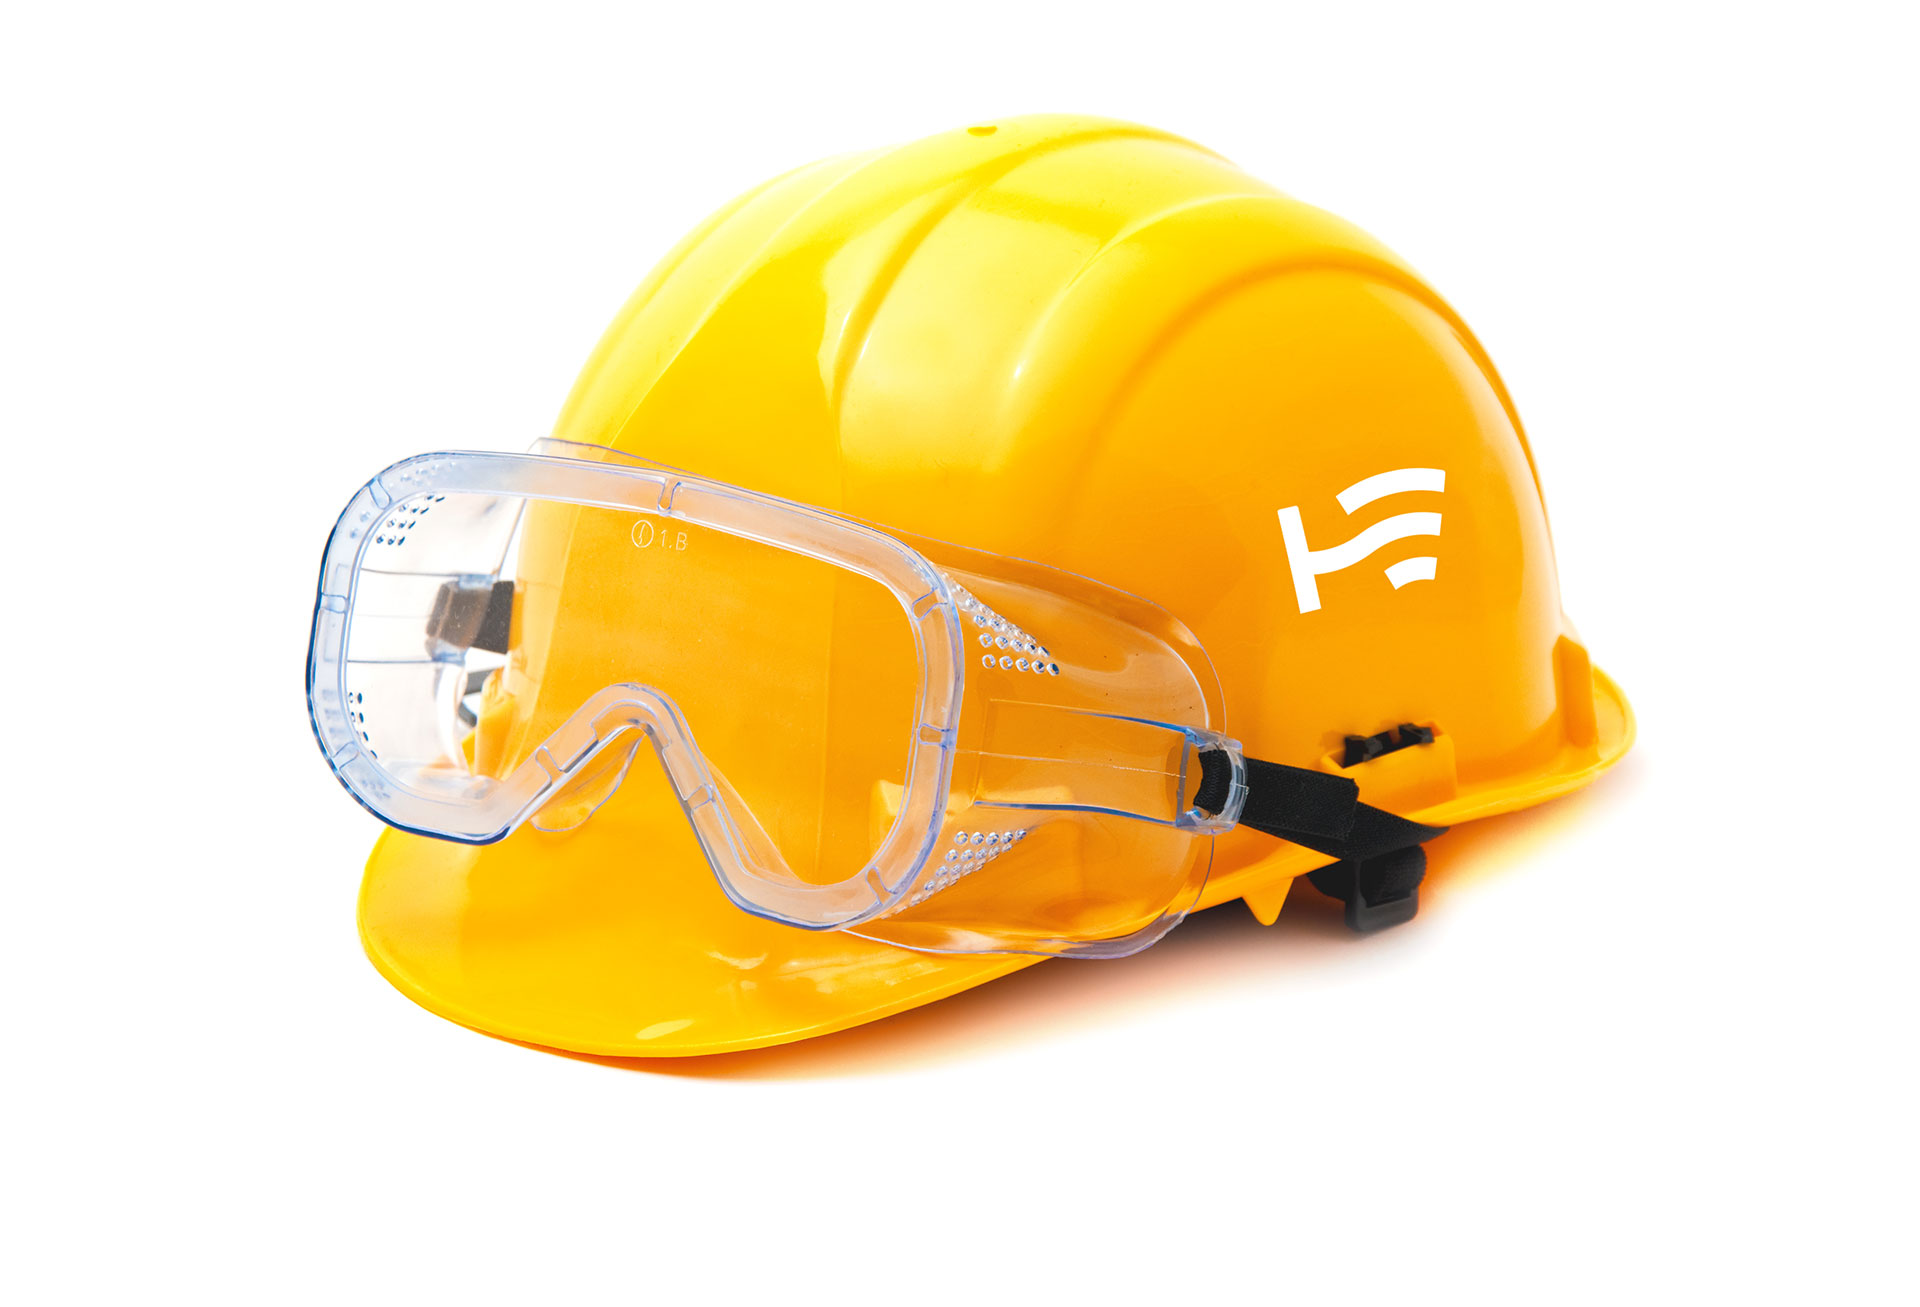 hydro electric worker hat with goggles